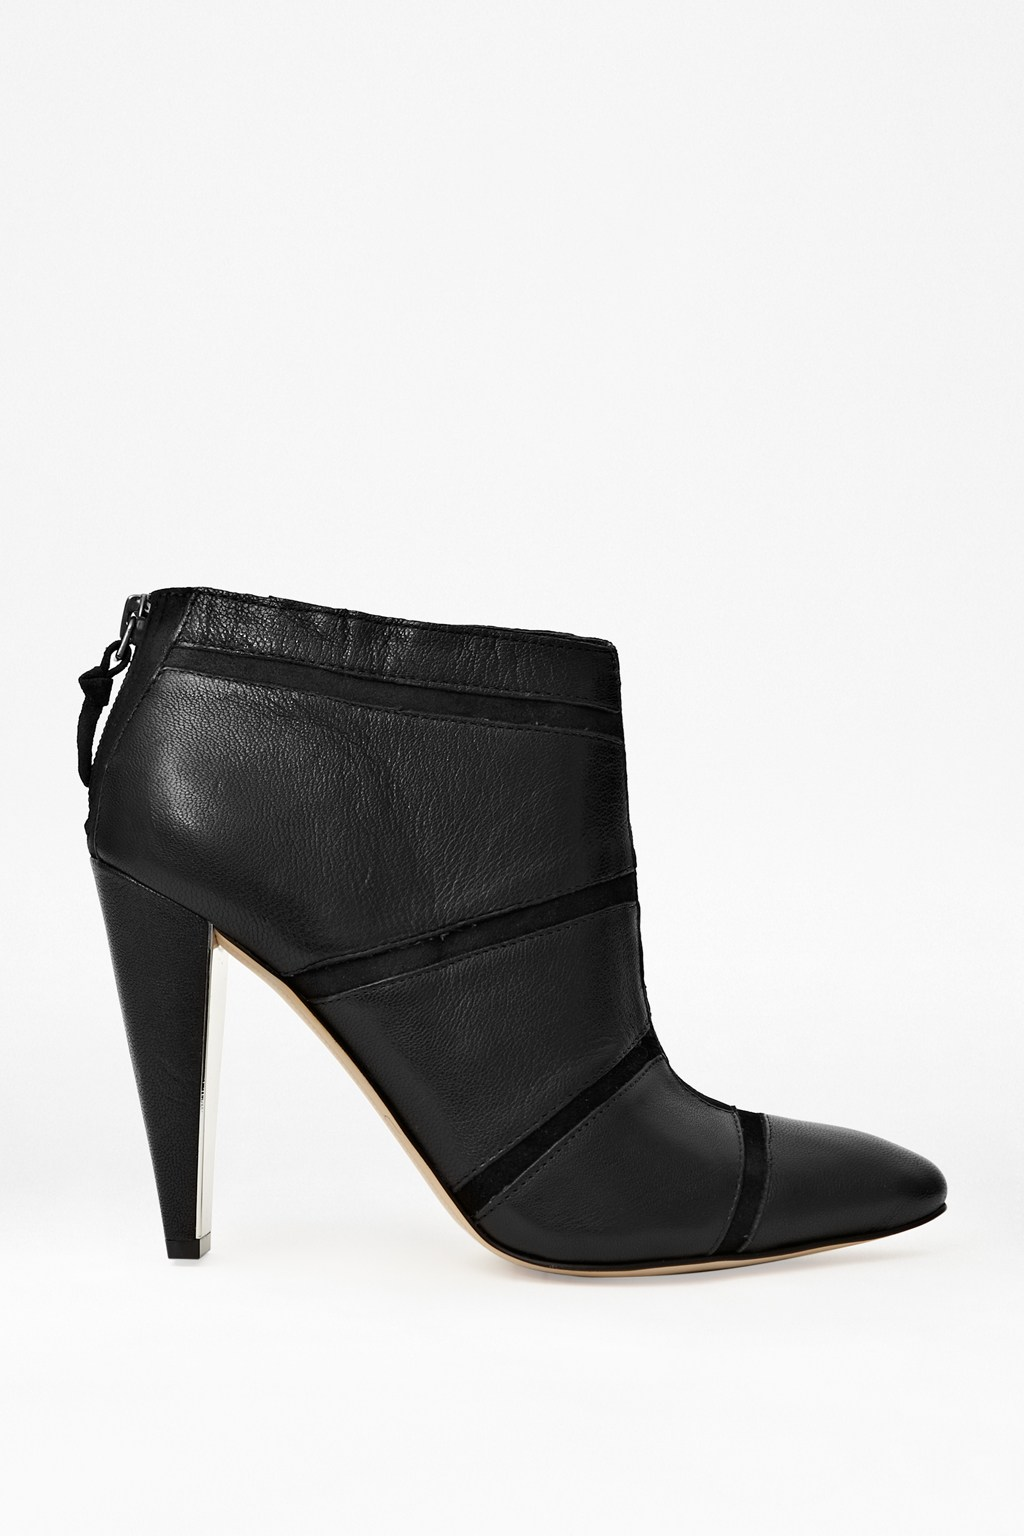 maddy leather ankle boots shoes connection usa